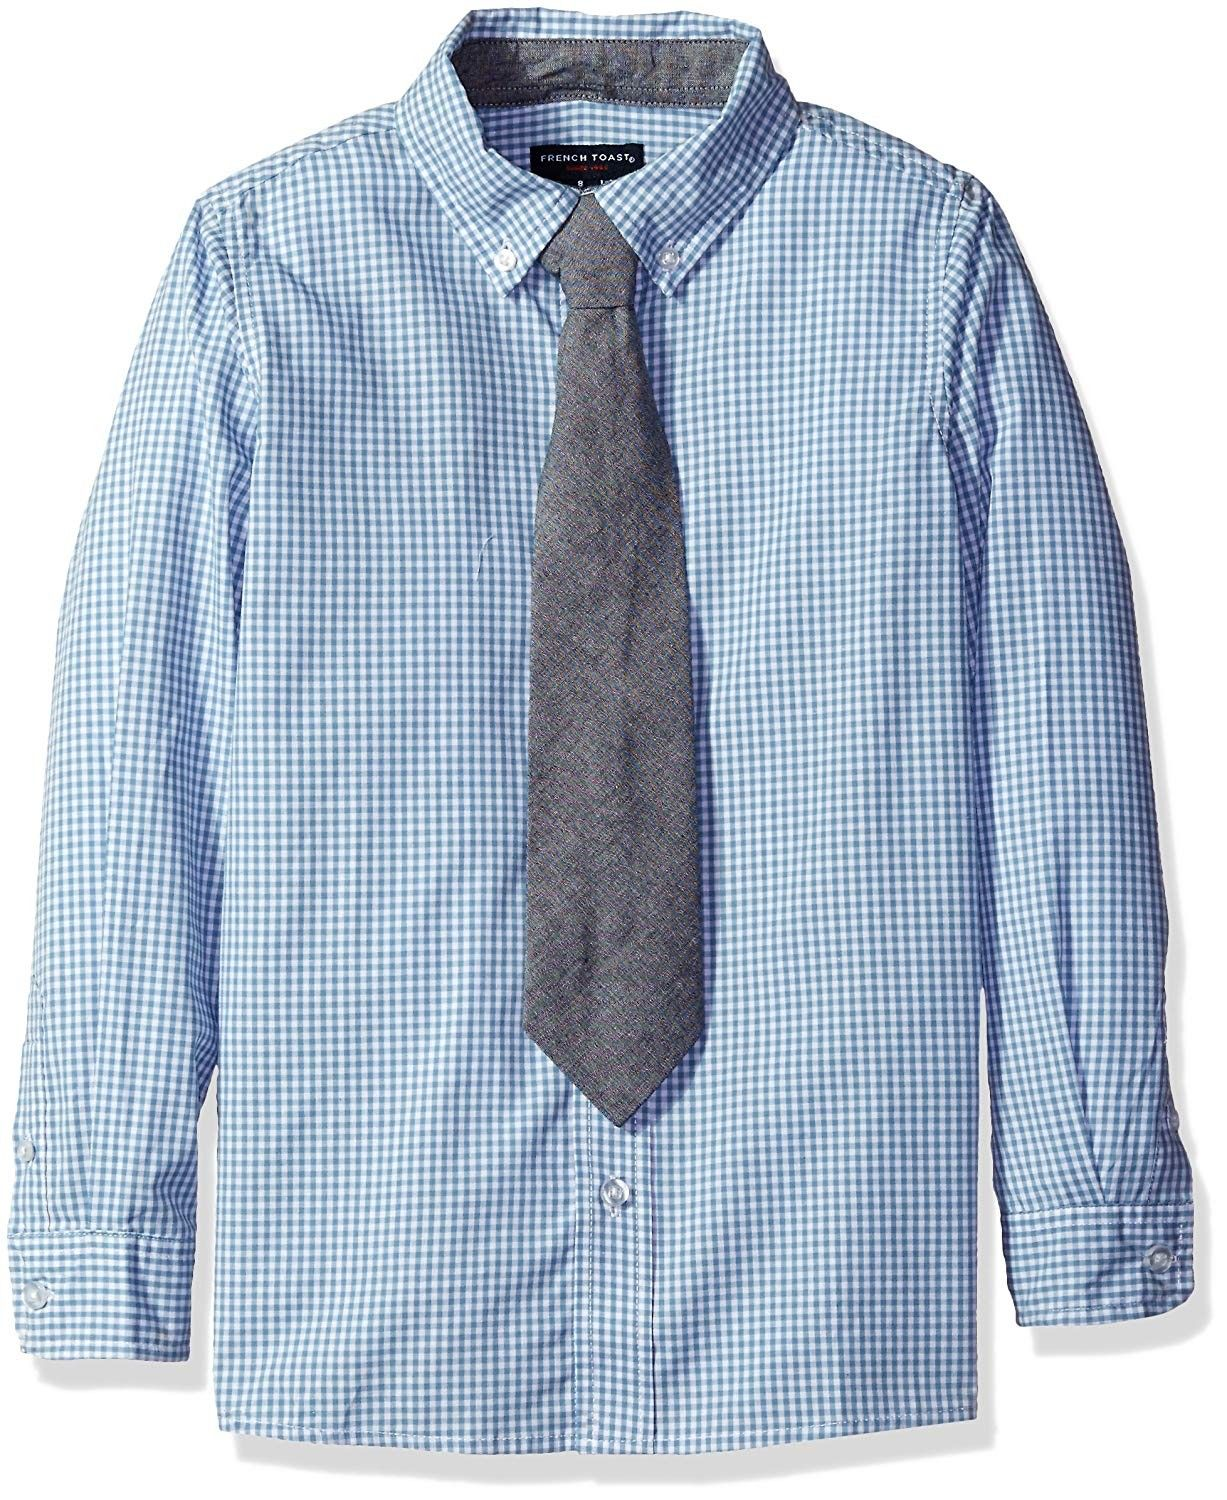 French Toast Boys Little Long Sleeve Dress Shirt with Tie White 7